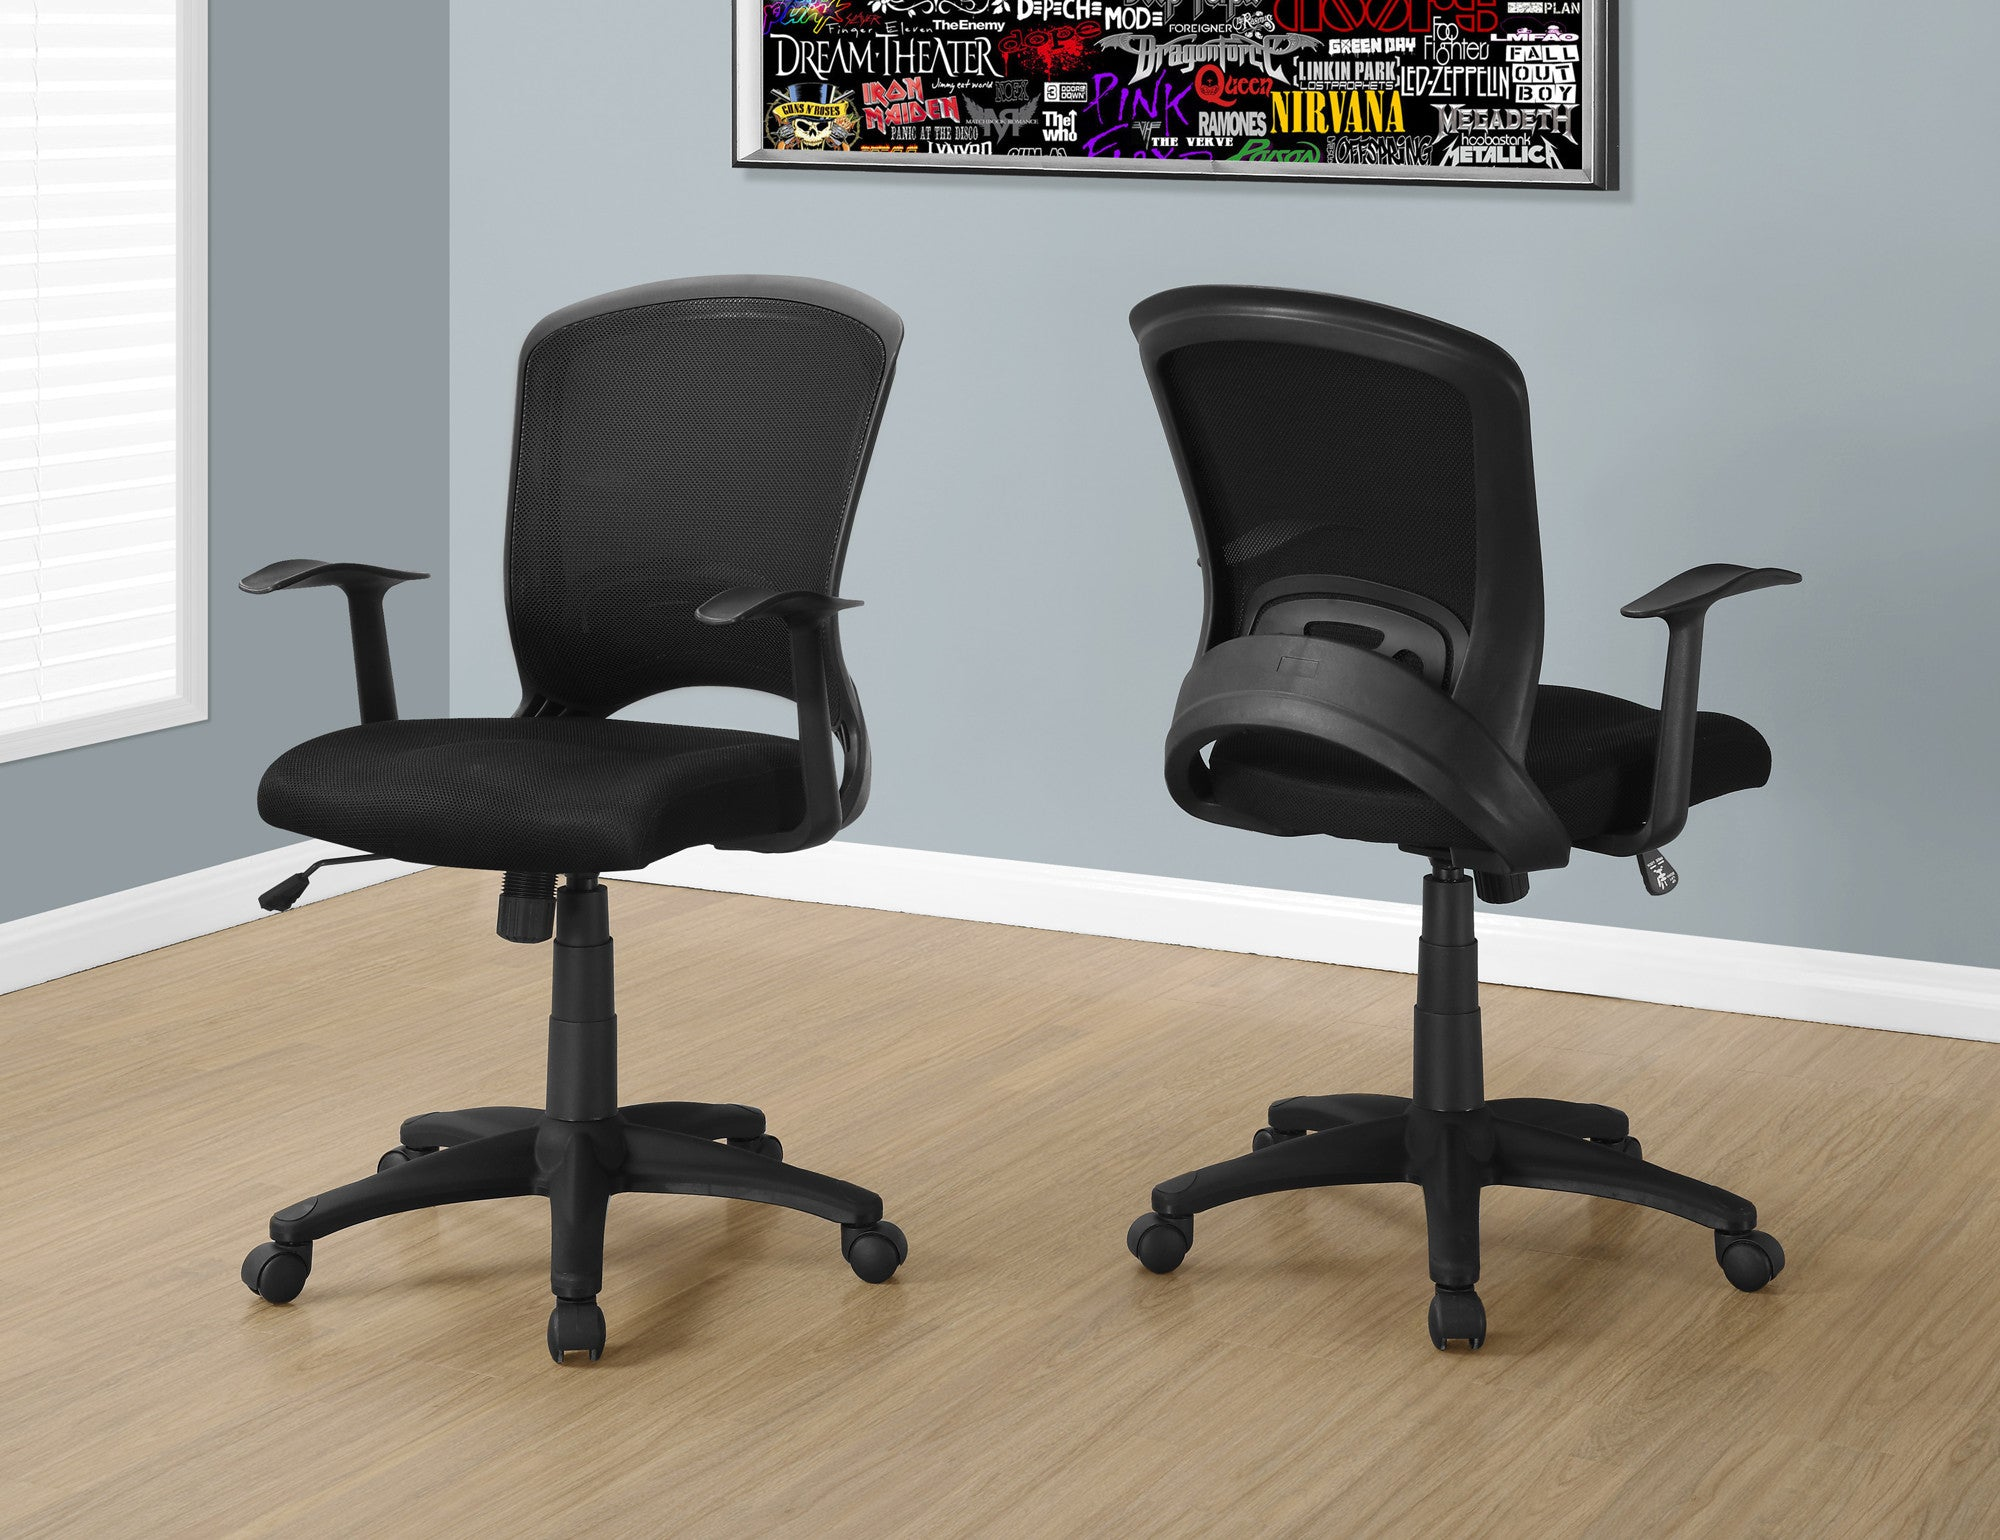 Premium Ergonomic Black Mesh Office Chair